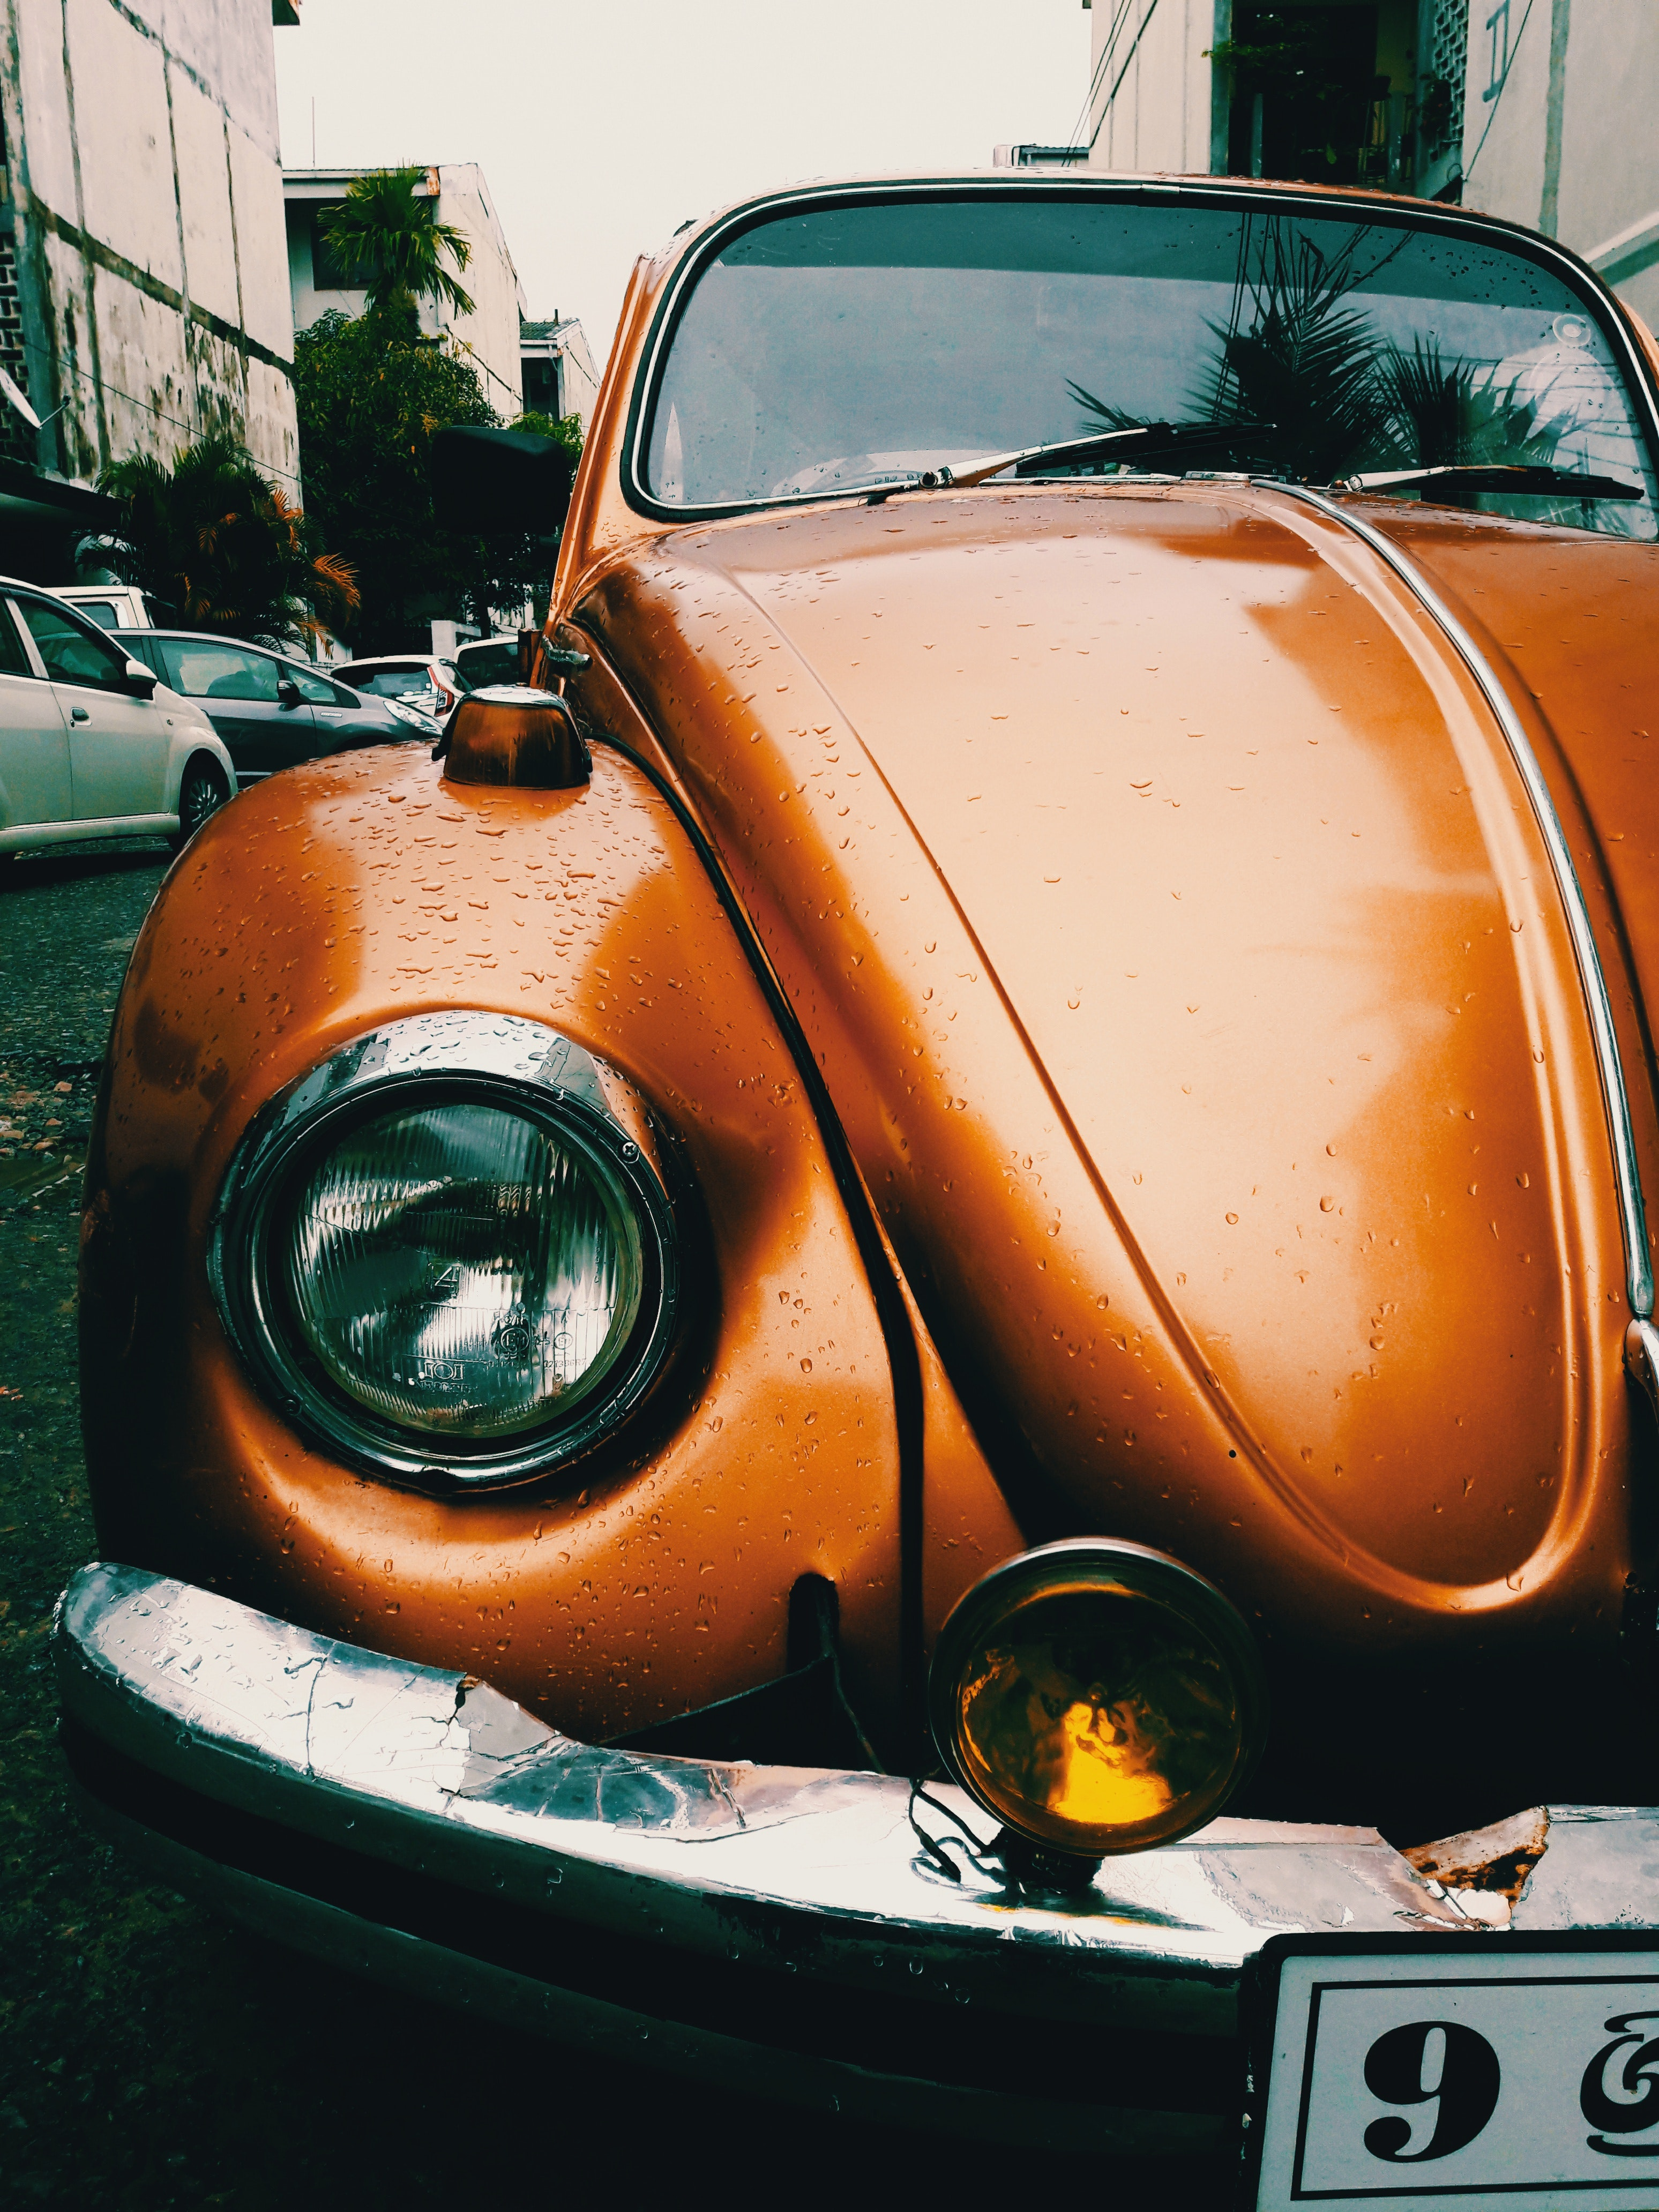 Close-Up Photography of Volkswagen Beetle · Free Stock Photo